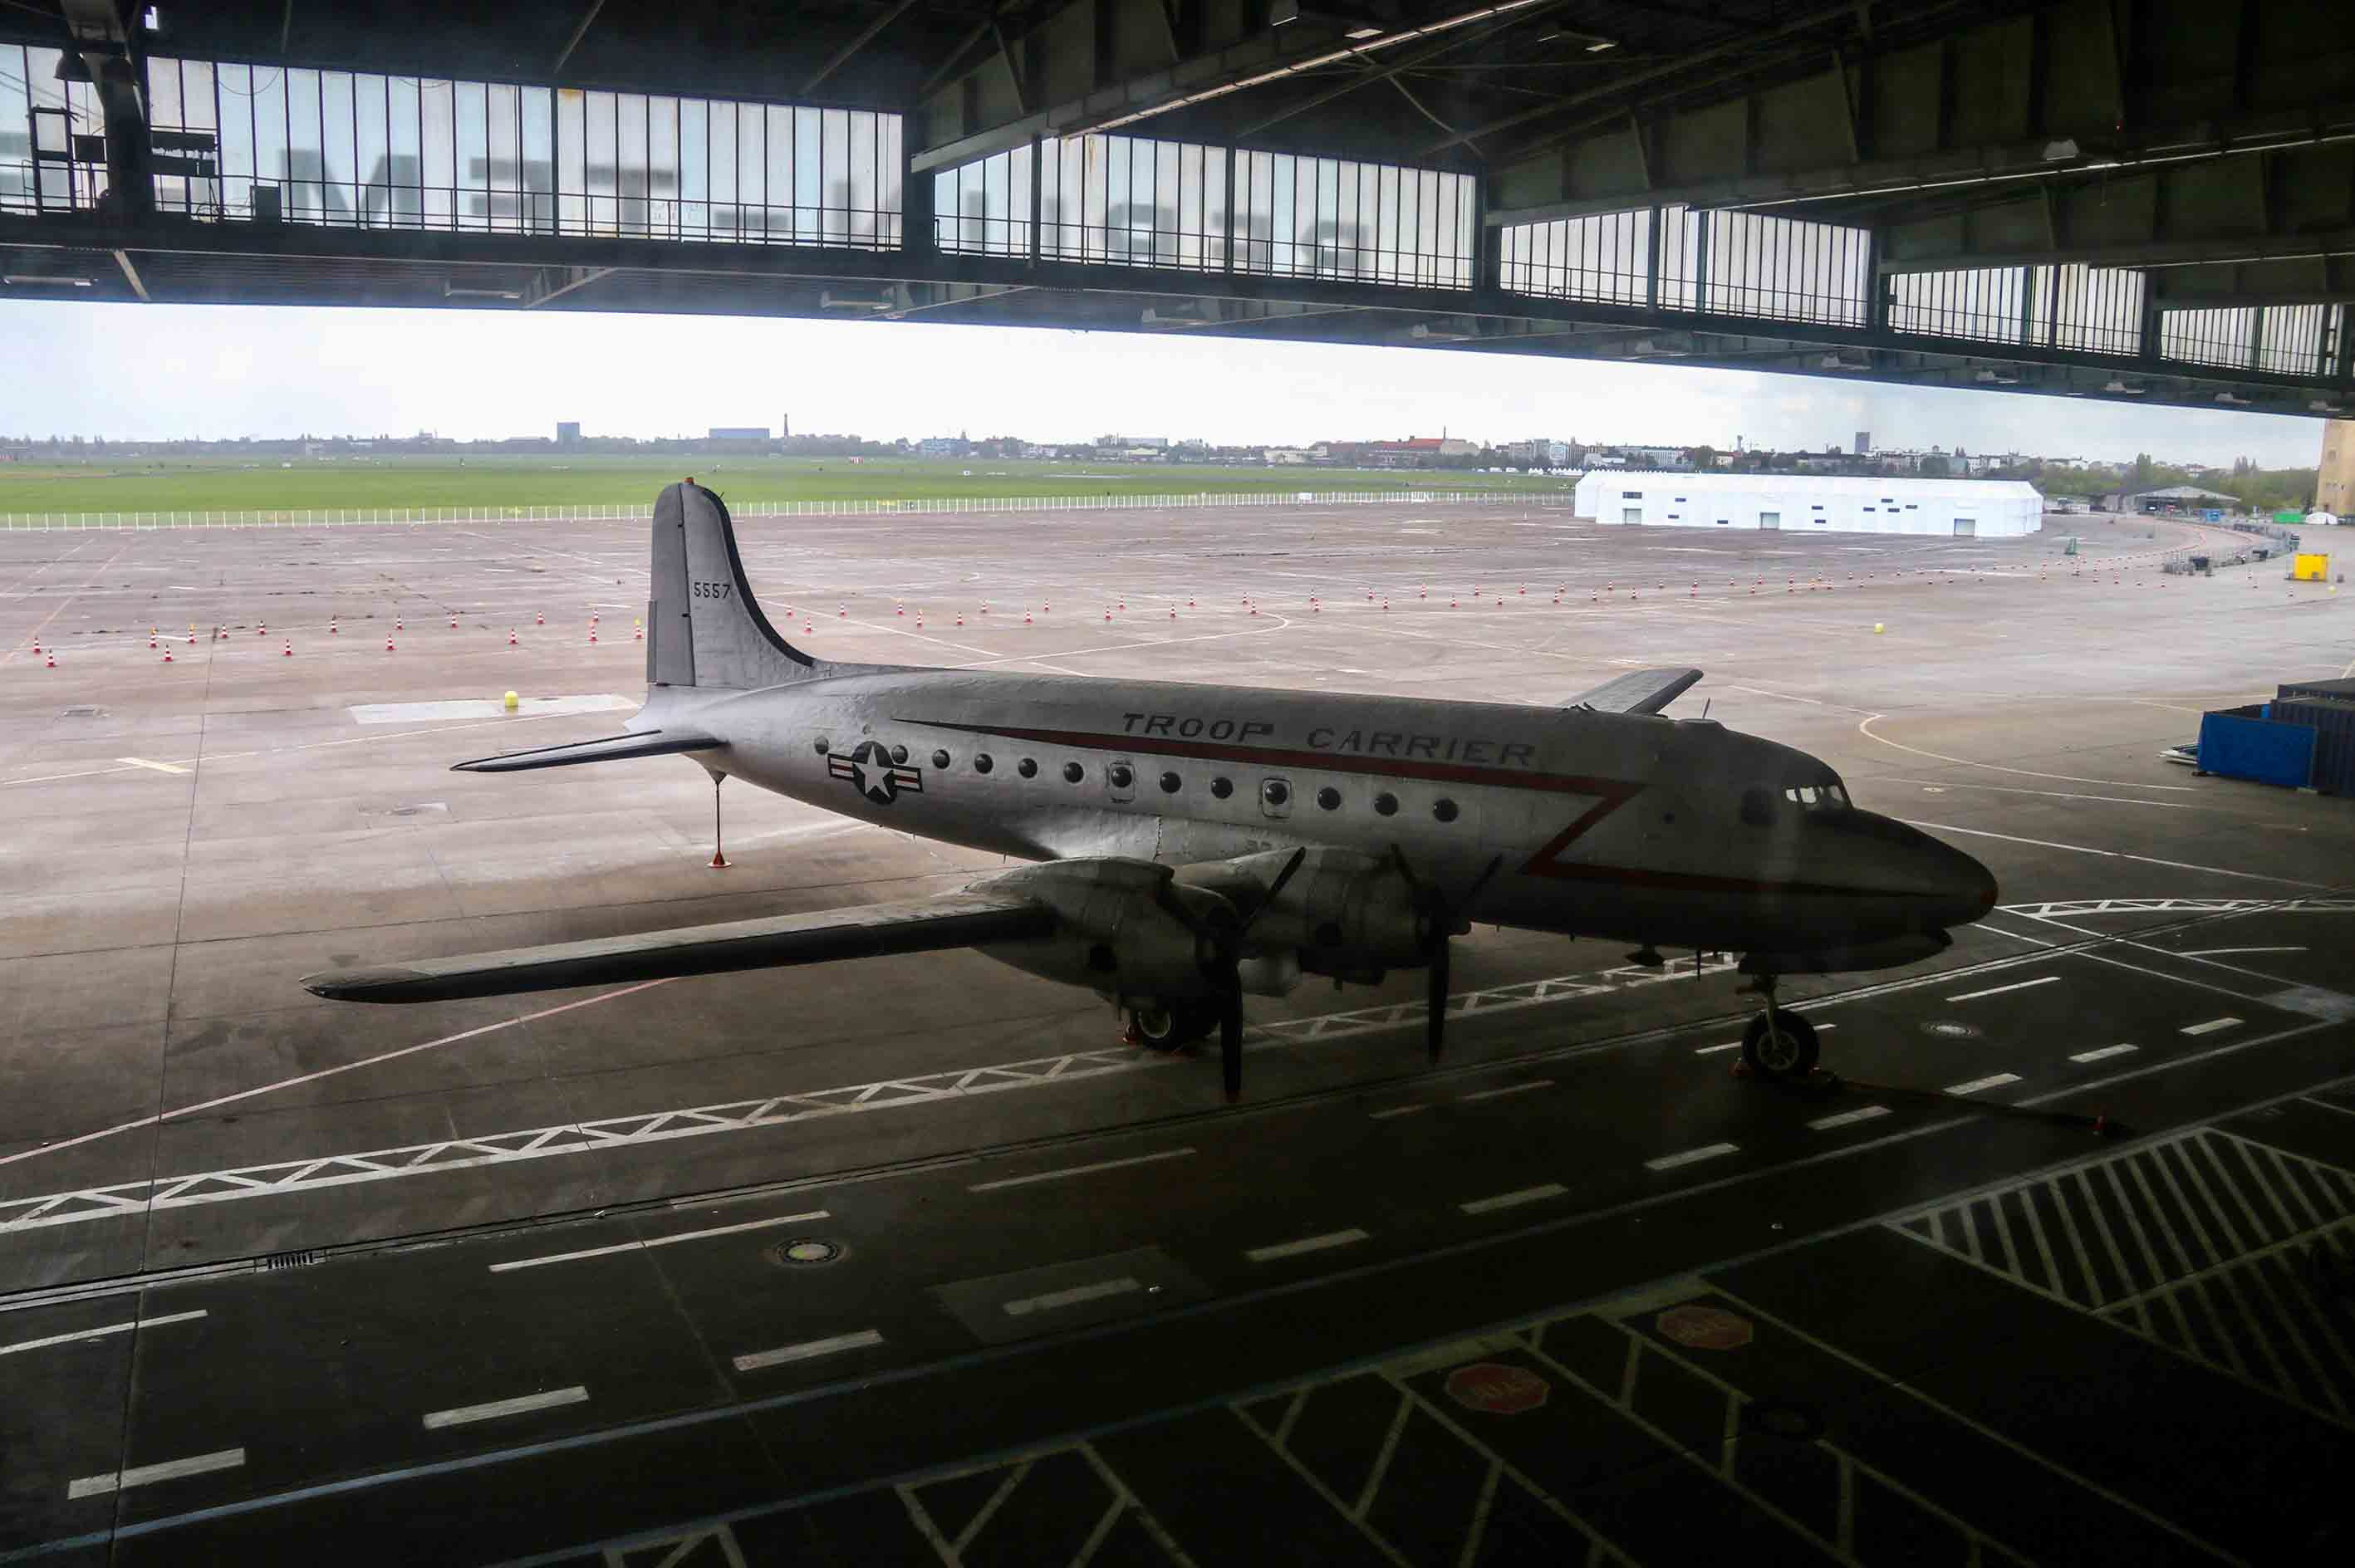 Tempelhof airport tour